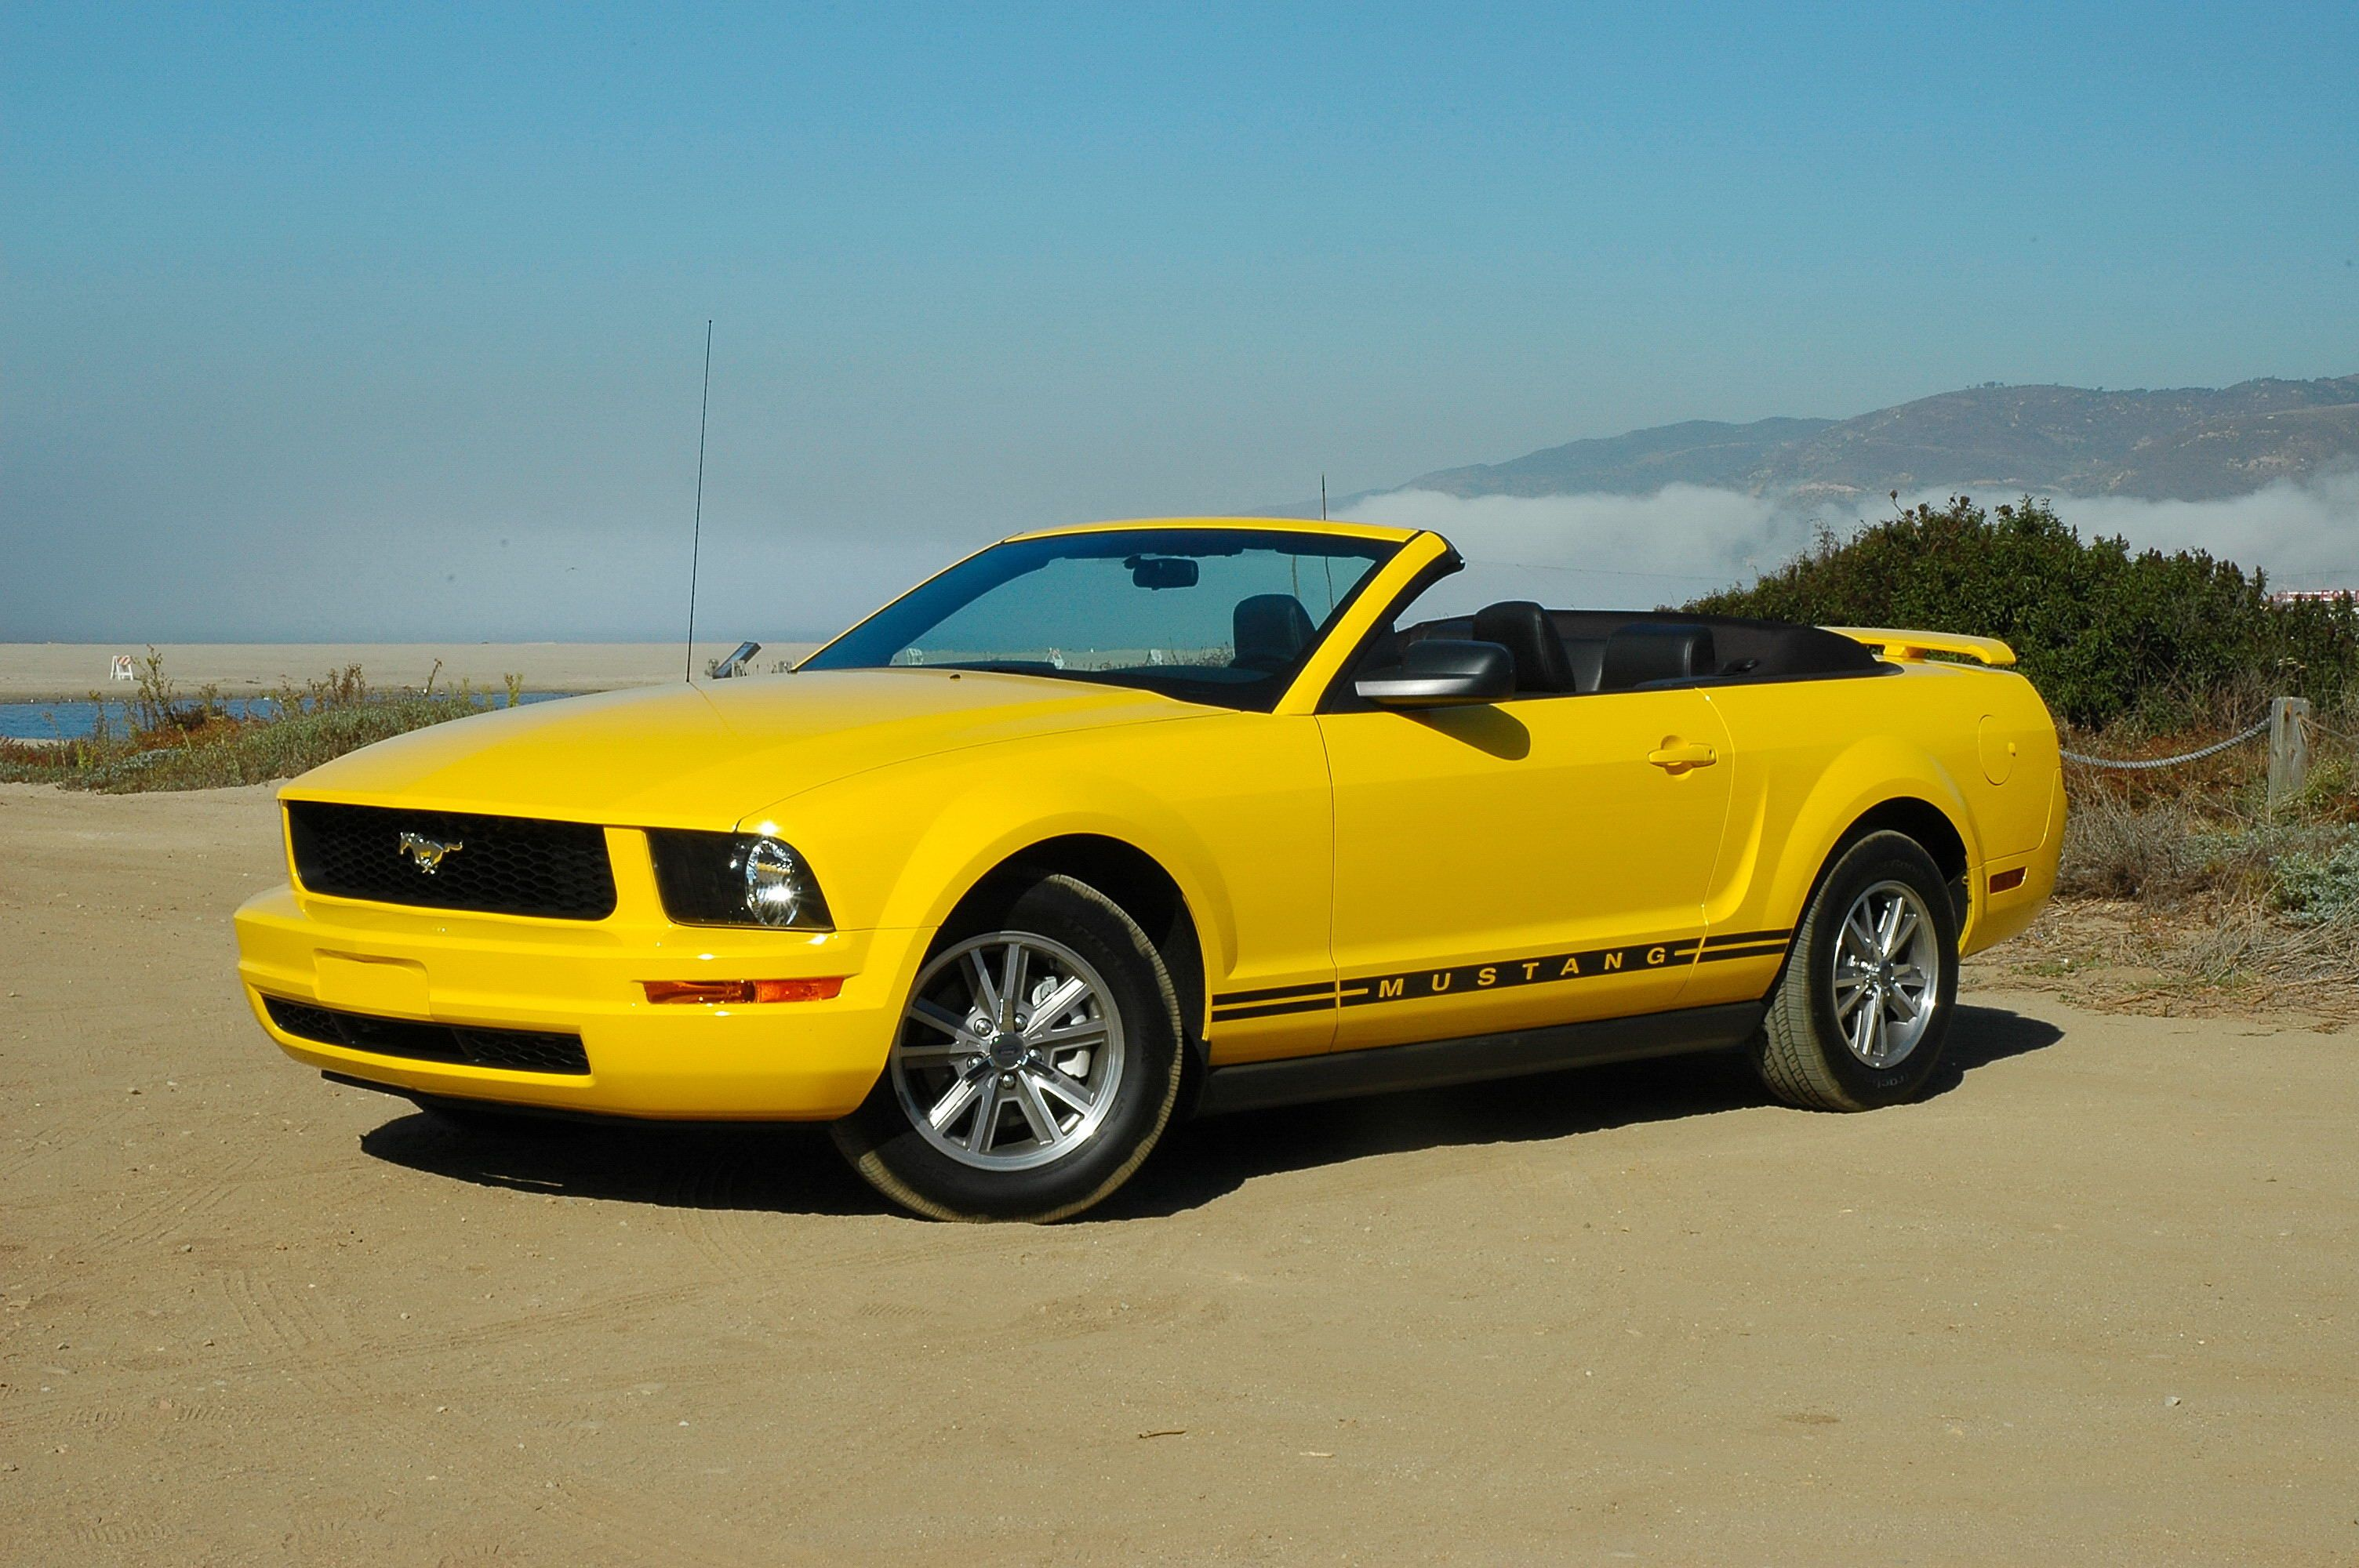 Ford mustang 2005 ford mustang v6 convertible mustangs 2005